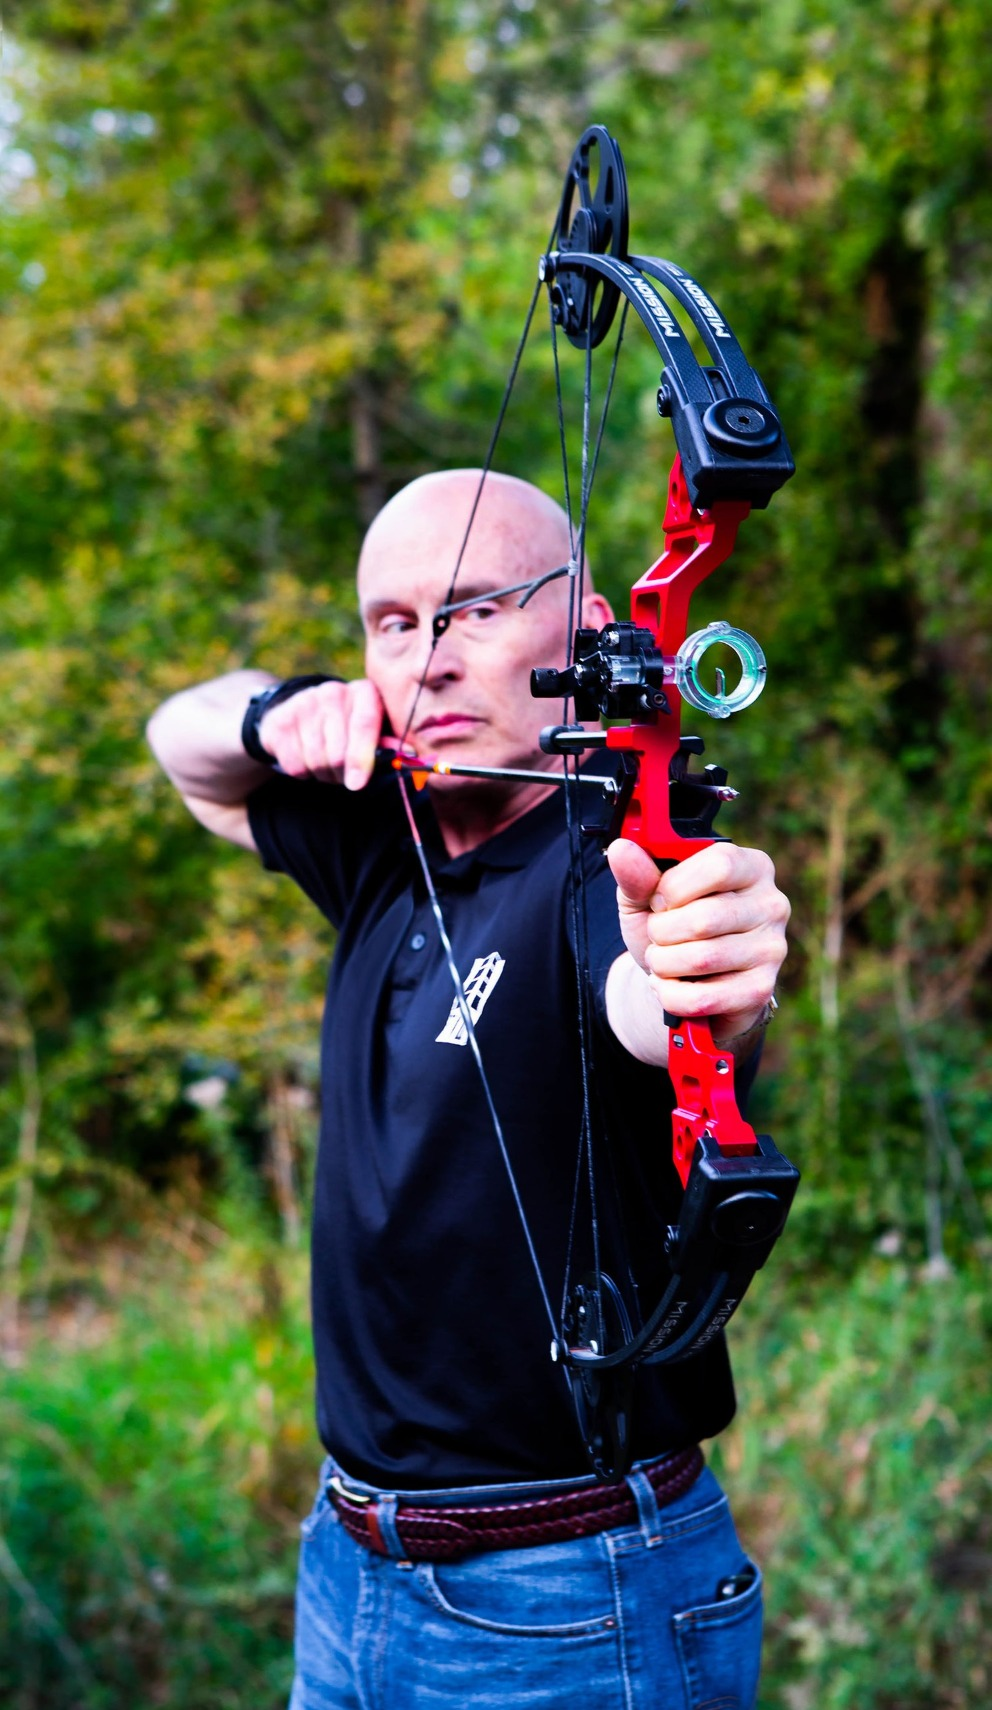 Our Managing Partner practices archery in his spare time